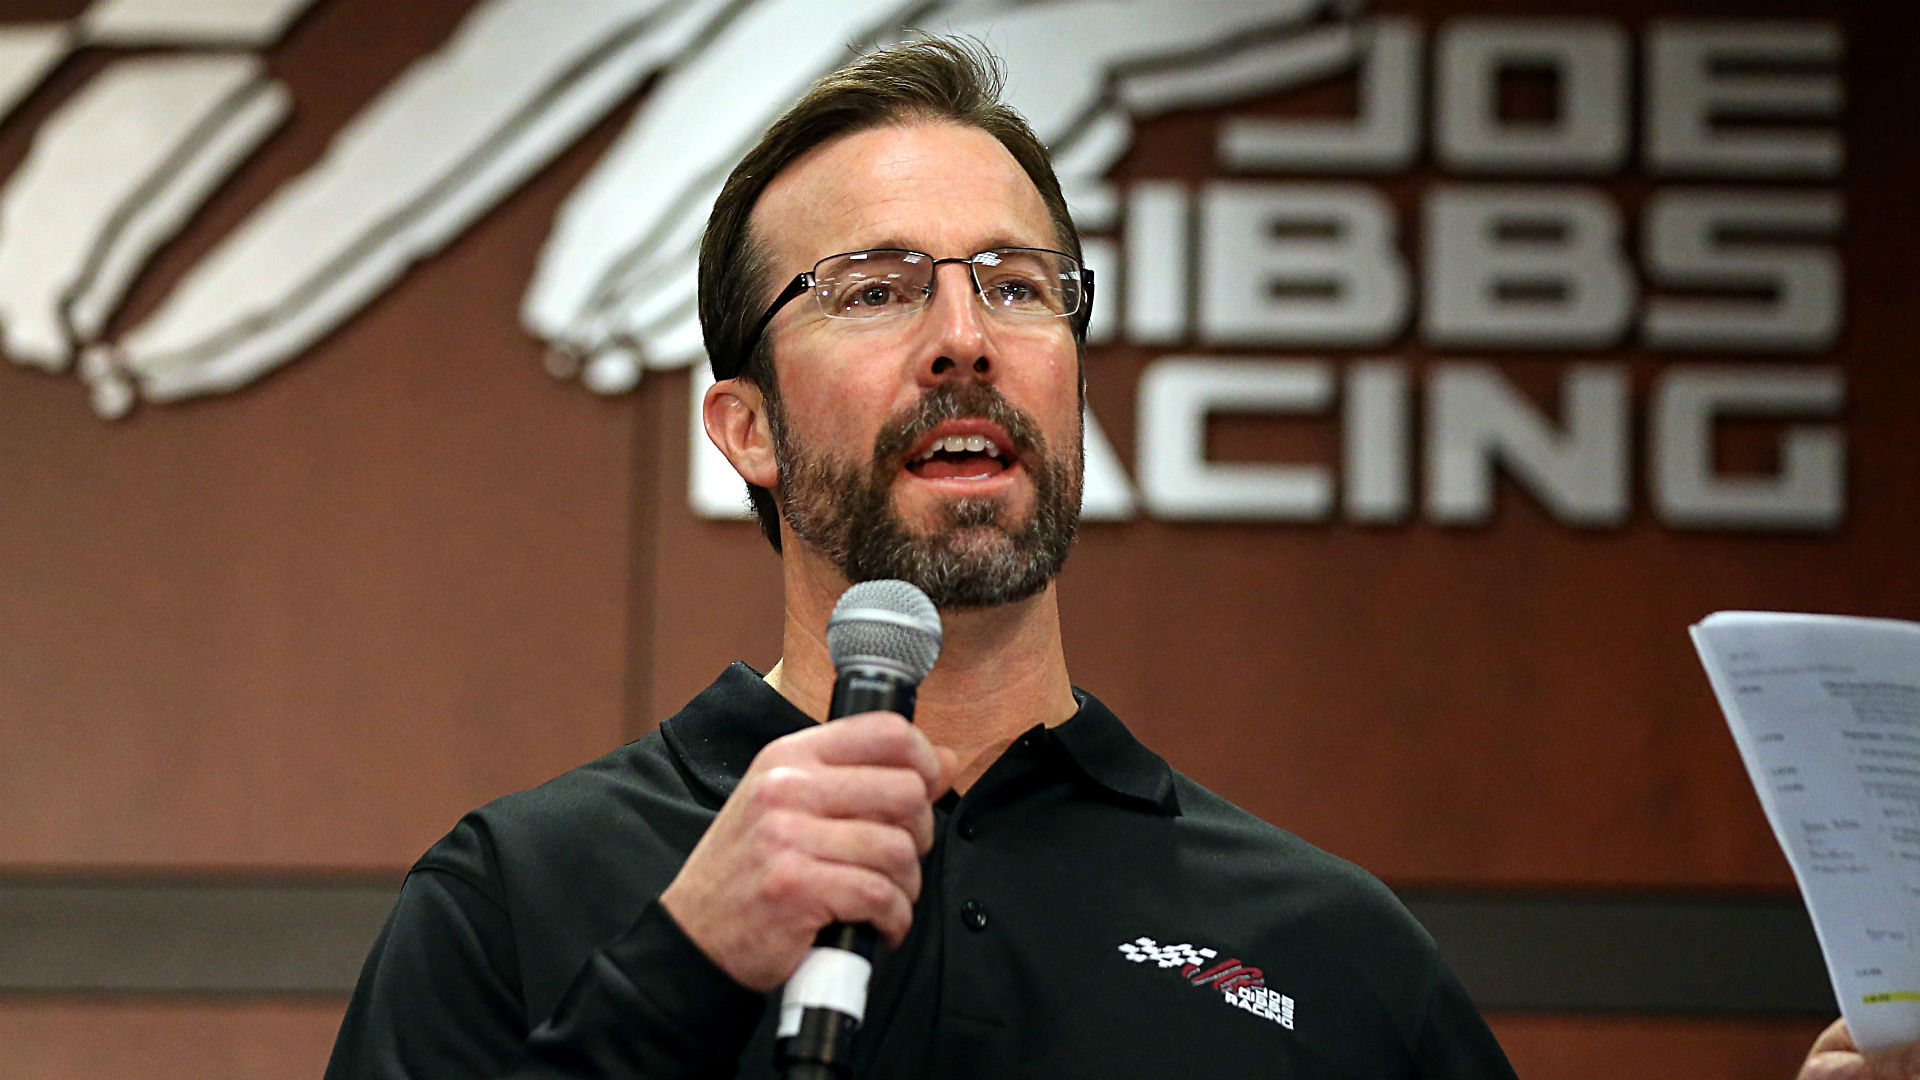 Daytona 500: Late J.D. Gibbs to be honored with tribute during Lap 11